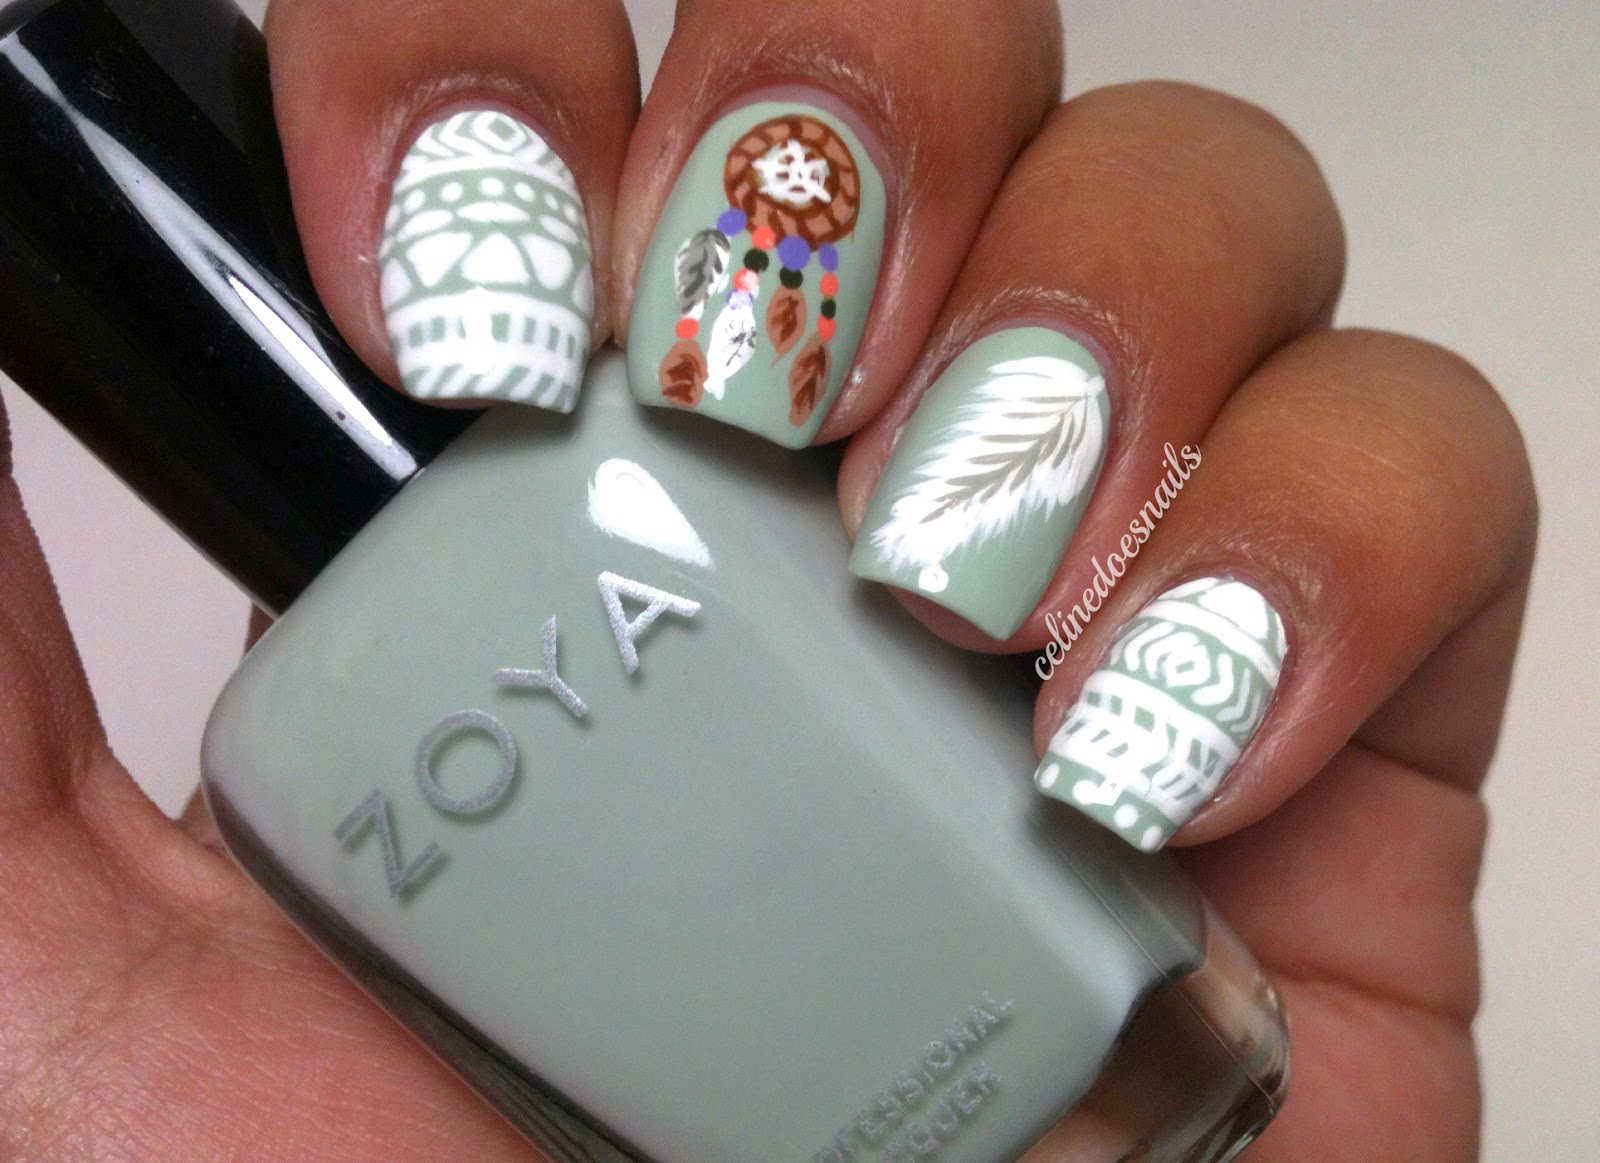 The Astounding Dreamcatcher nail designs Digital Imagery